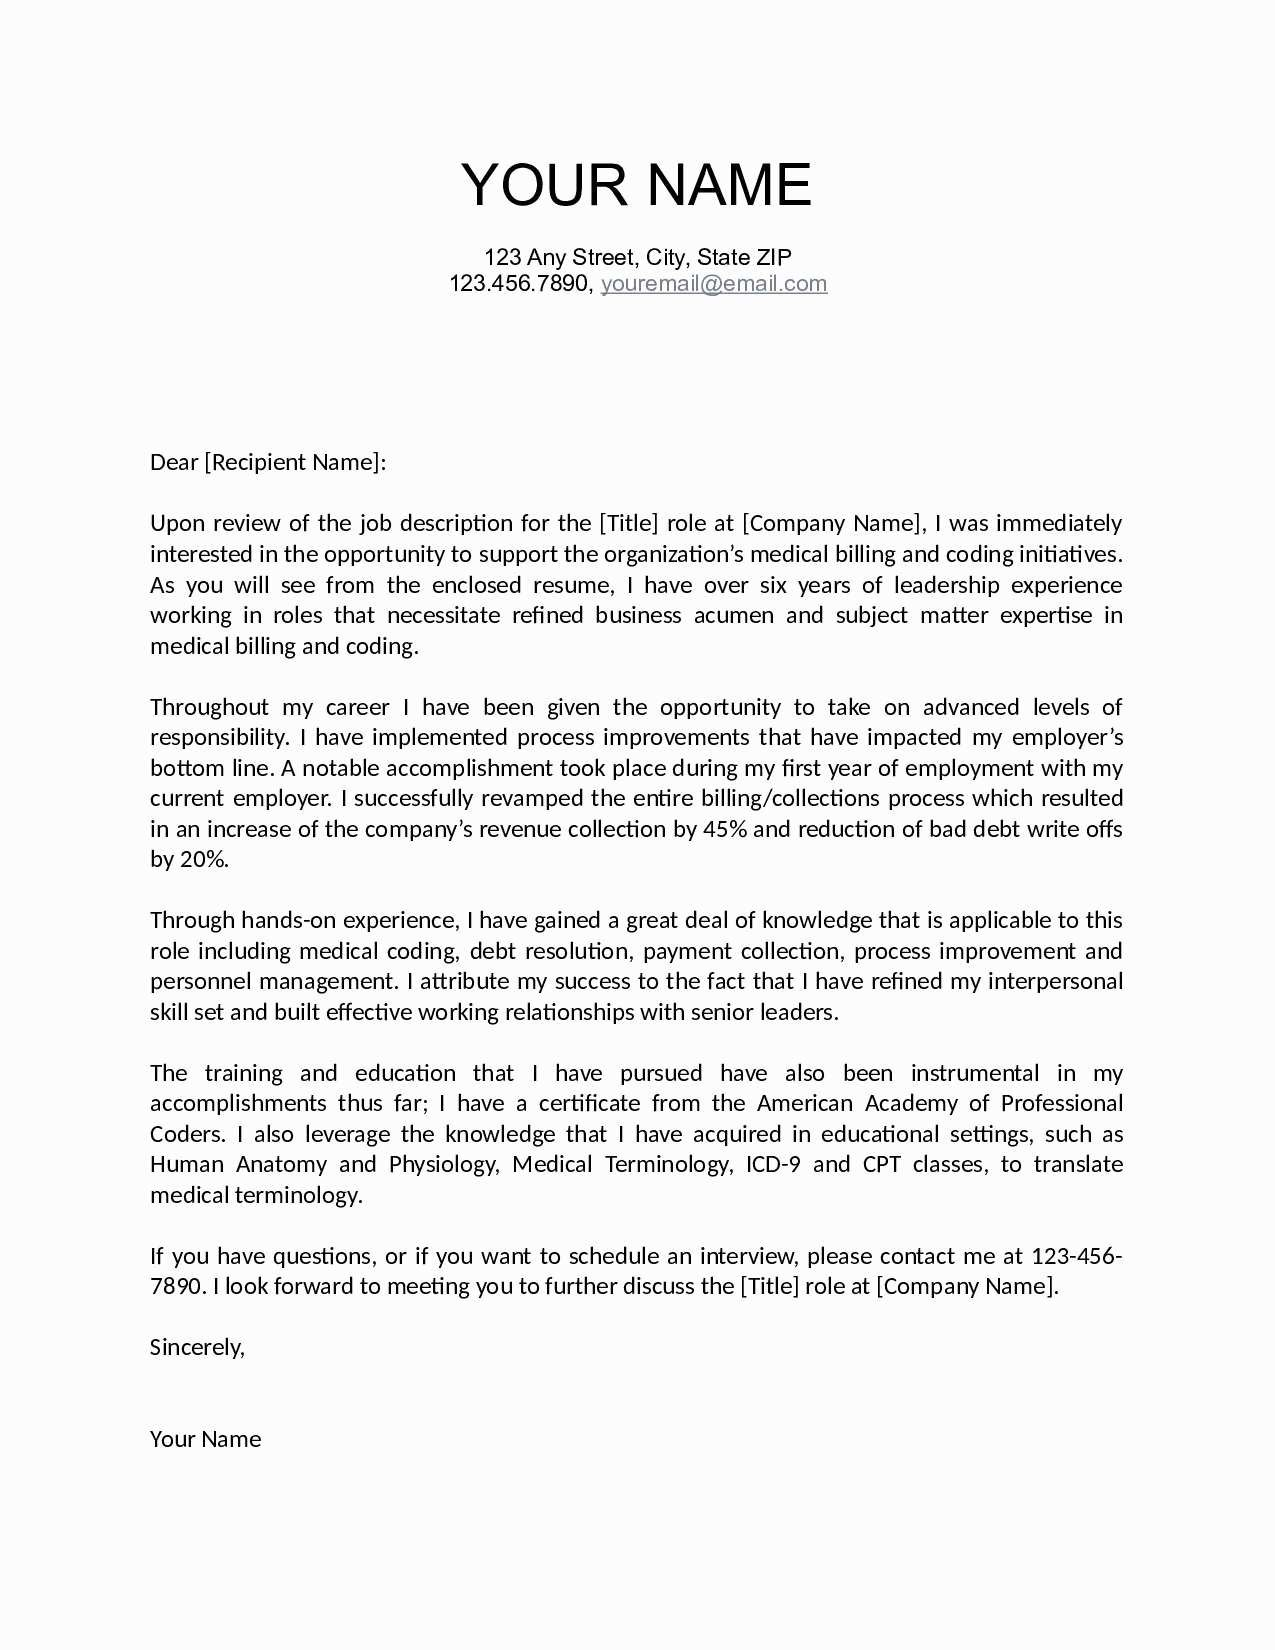 Executive Offer Letter Template - Executive Job Fer Letter Sample Refrence Job Fer Letter Template